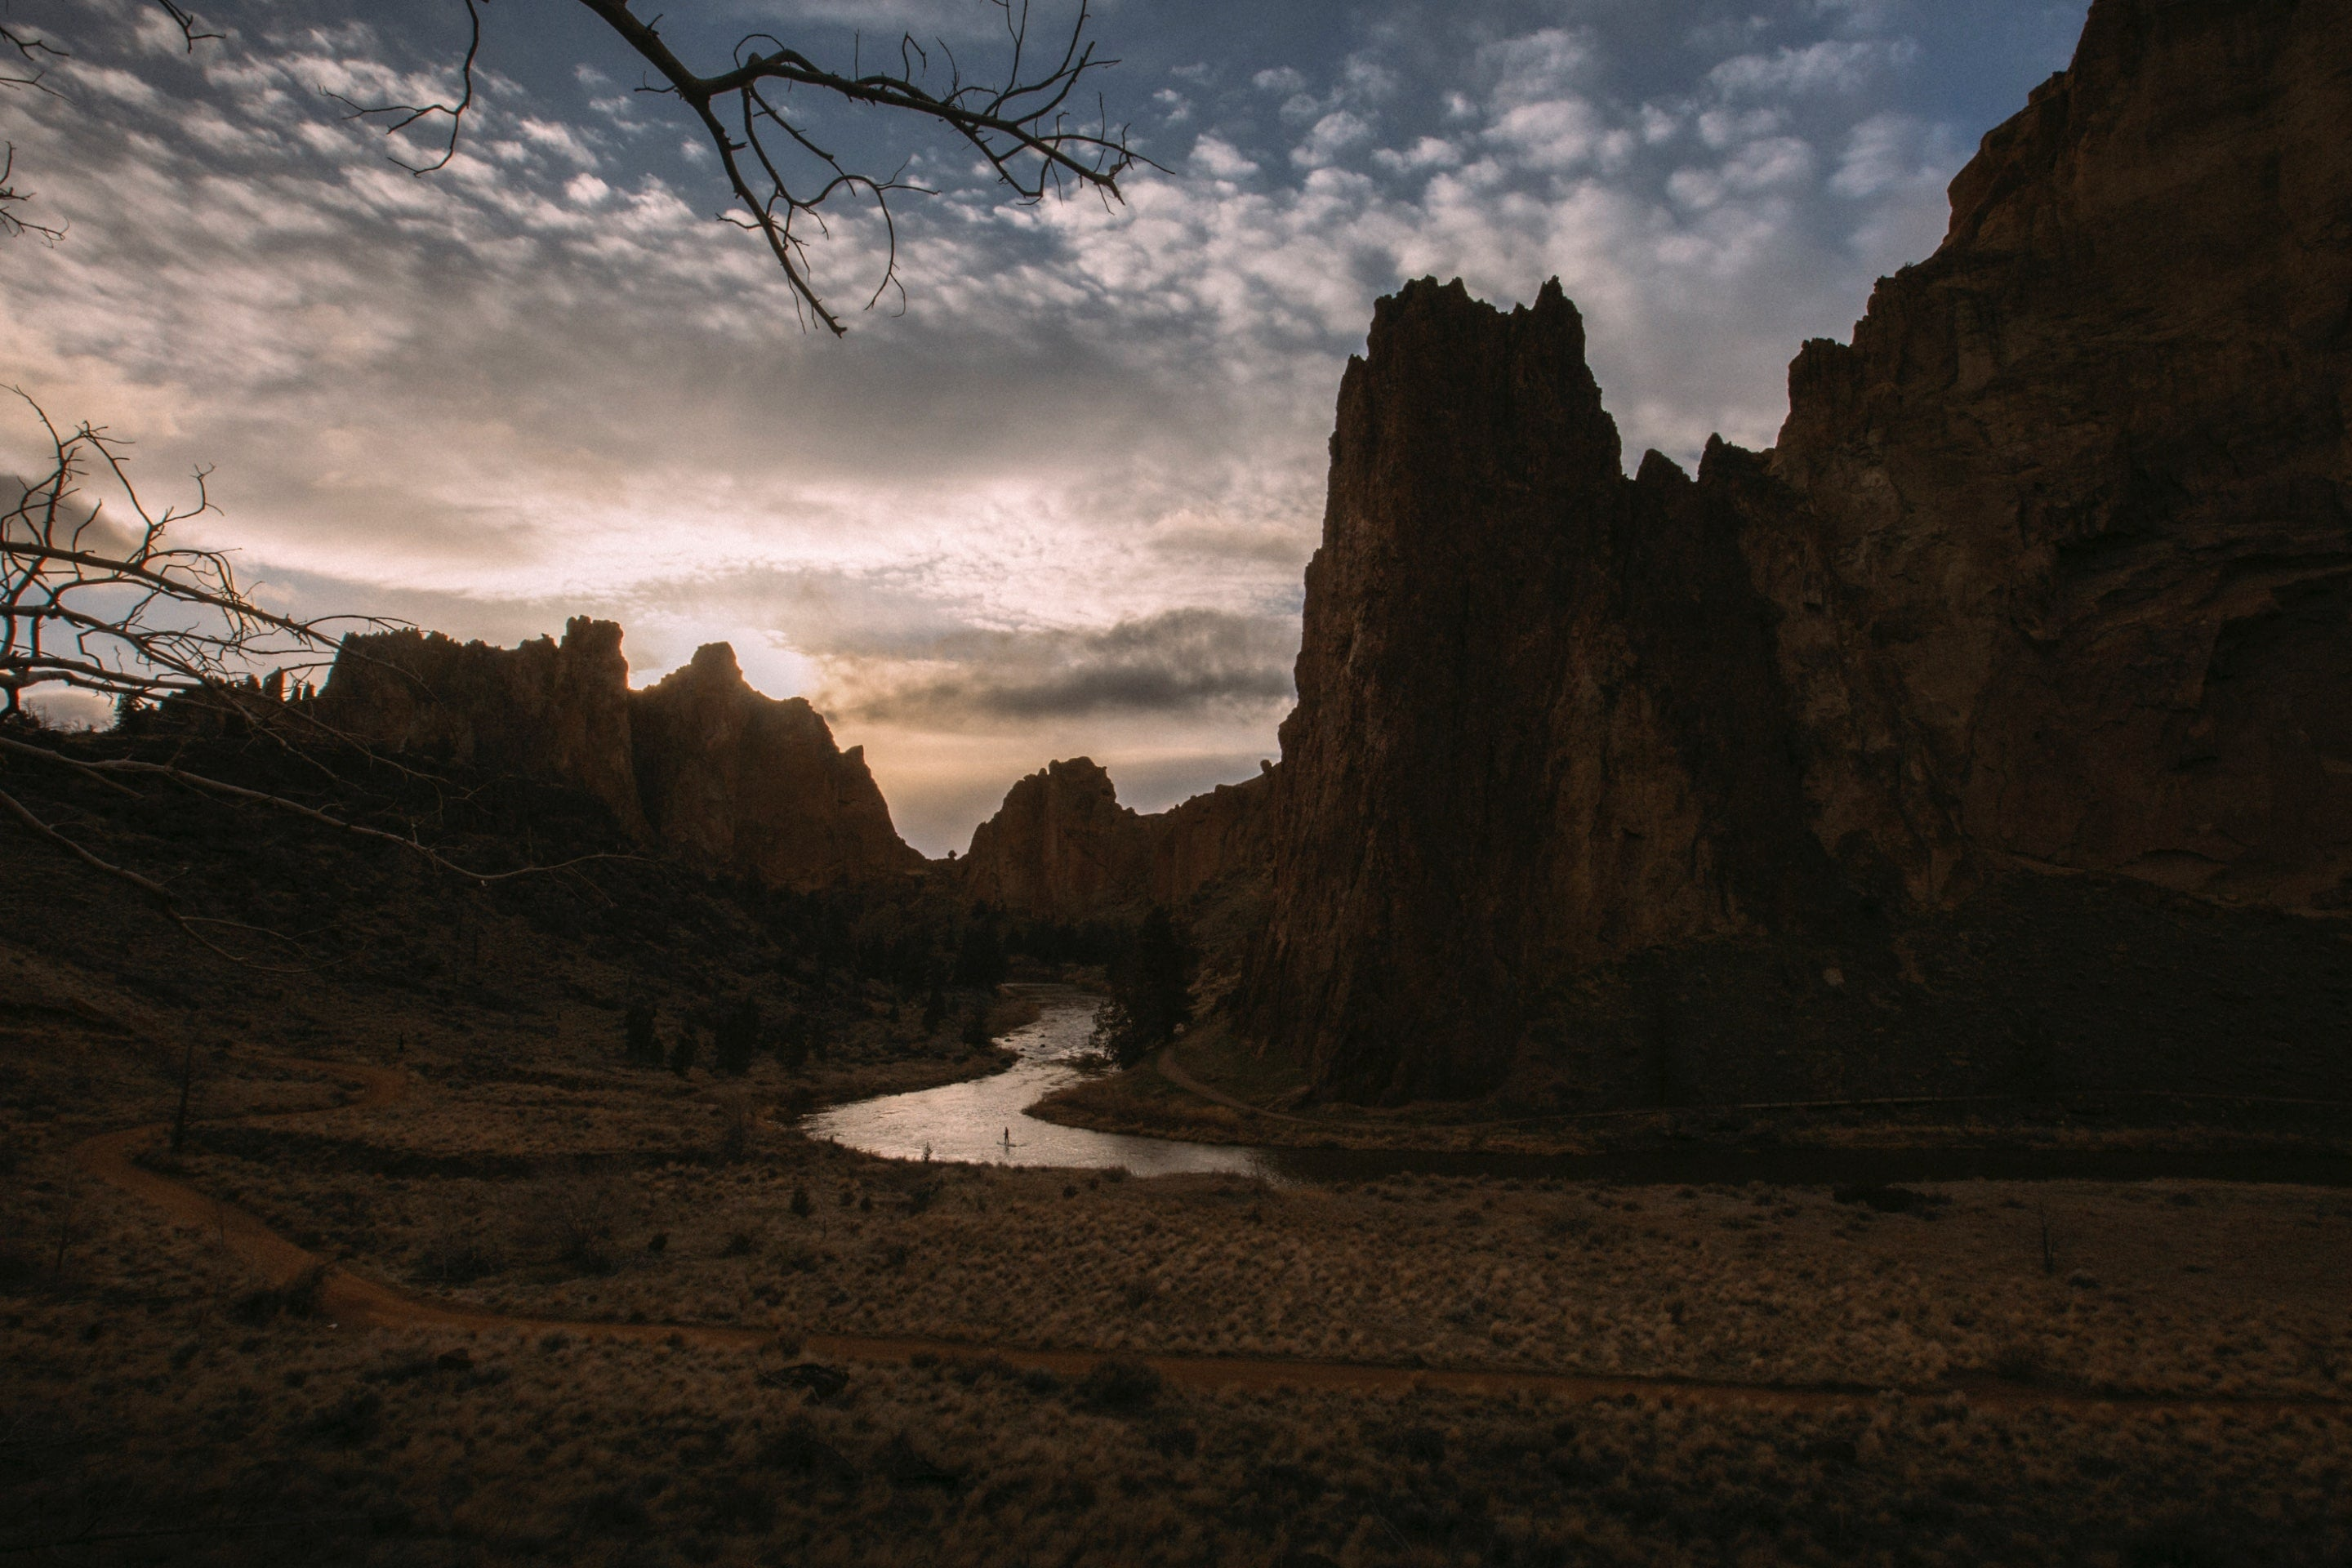 Landond paddling down Crooked River on his inflatable paddle board through Smith Rock State Park, Terrebonne, Oregon